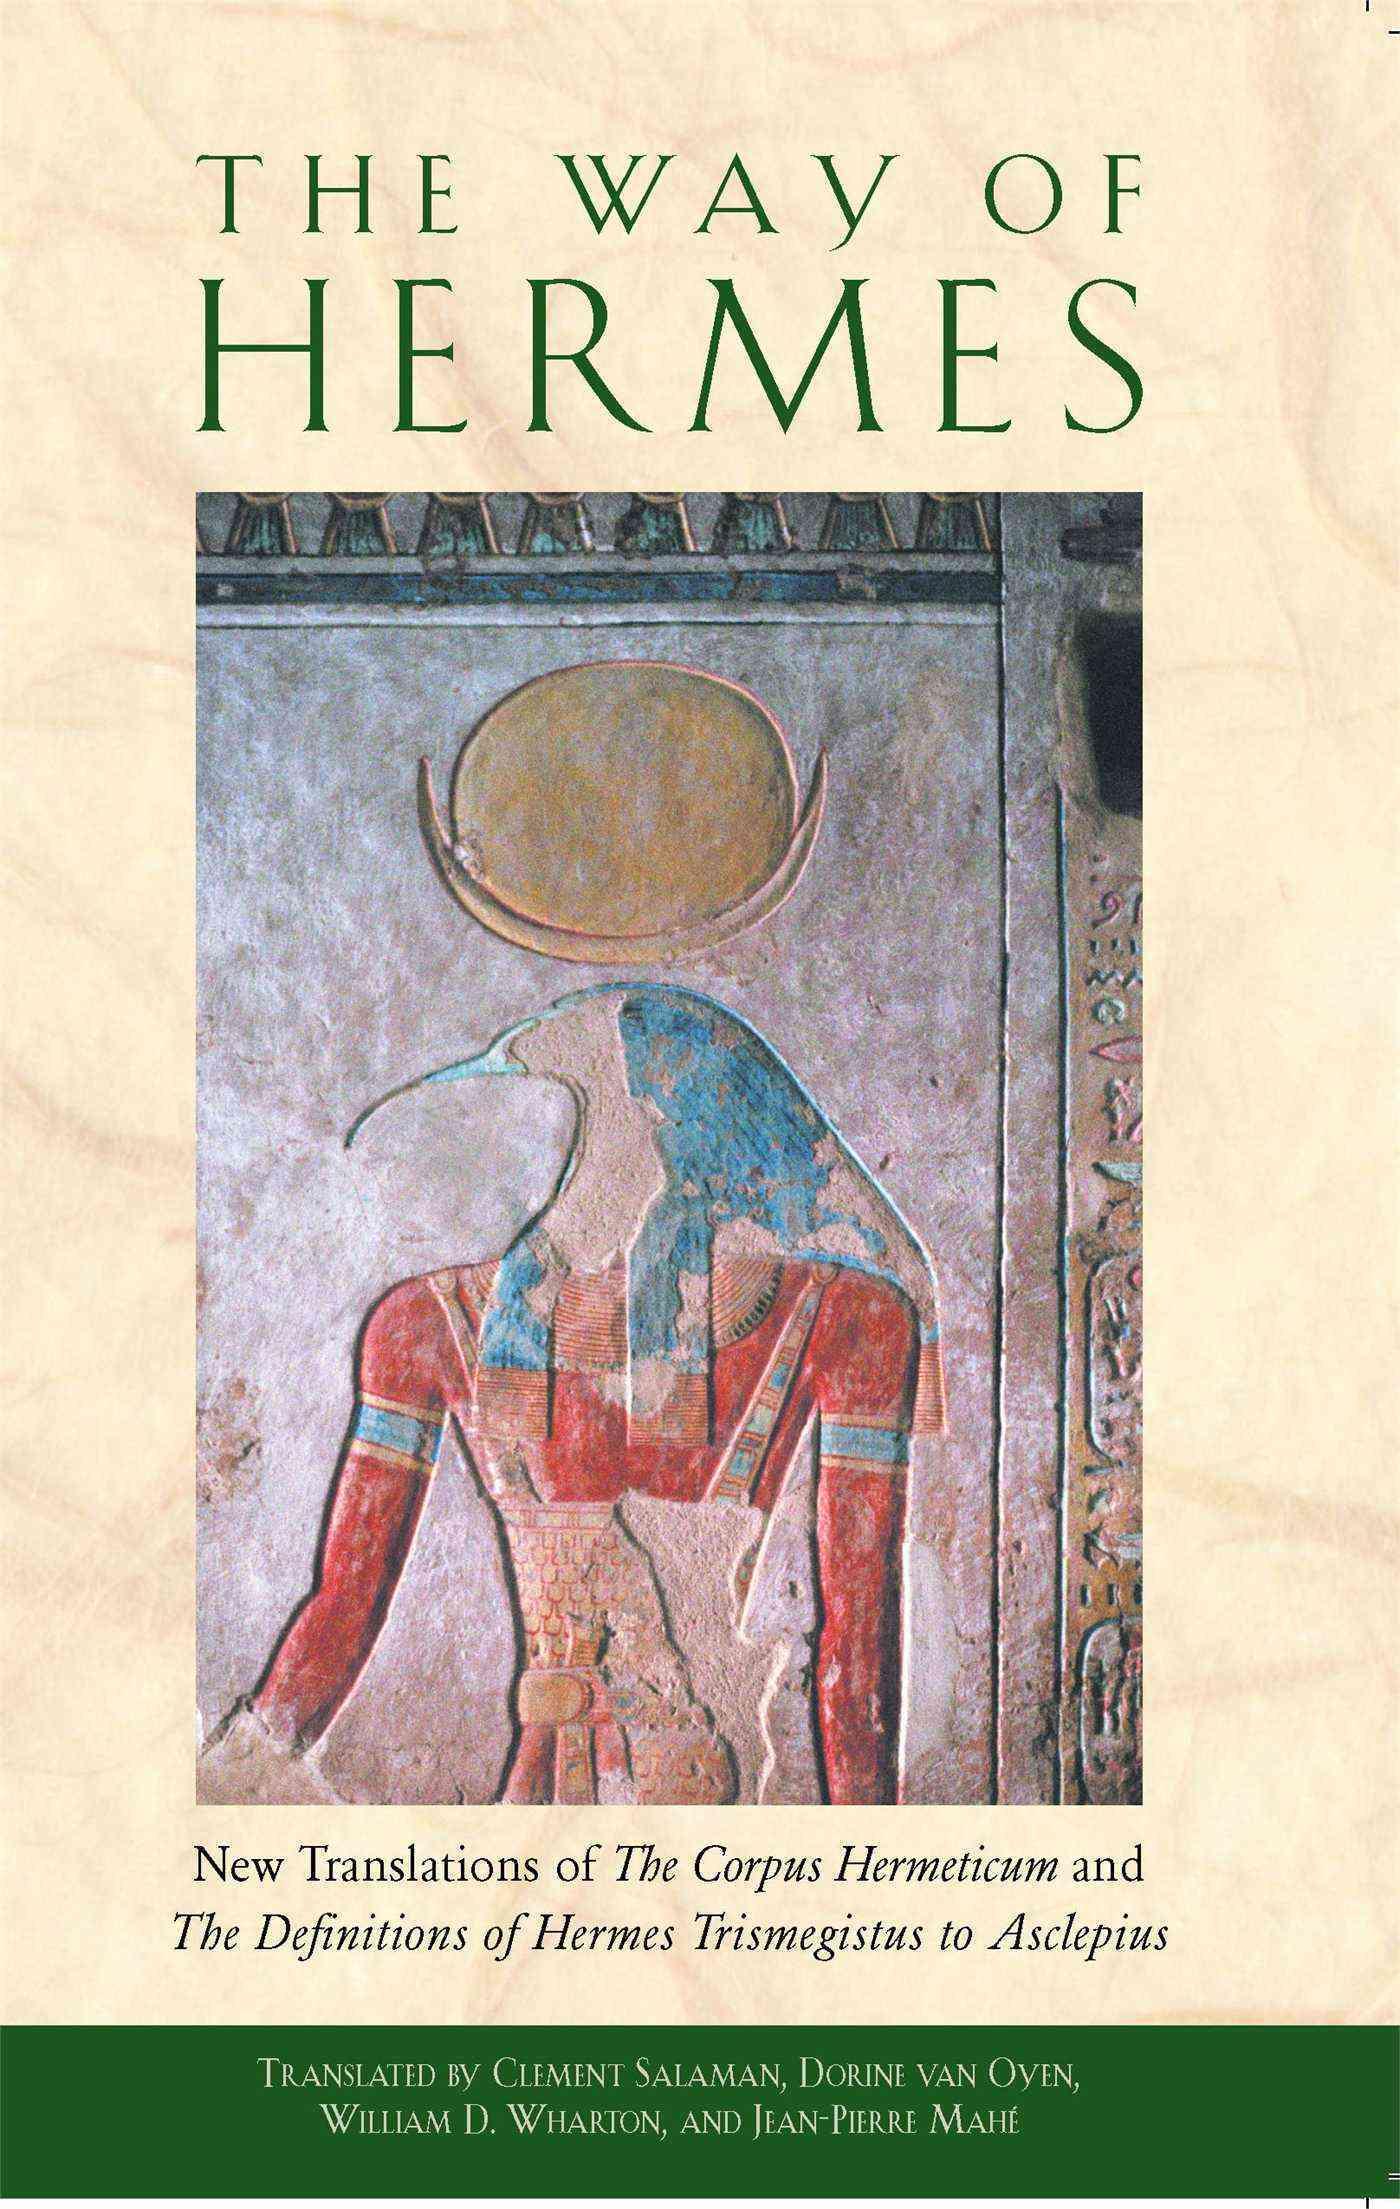 The Way of Hermes: New Translations of the Corpus Hermeticum and the Definitions of Hermes Trismegistus to Asclepius (Paperback)